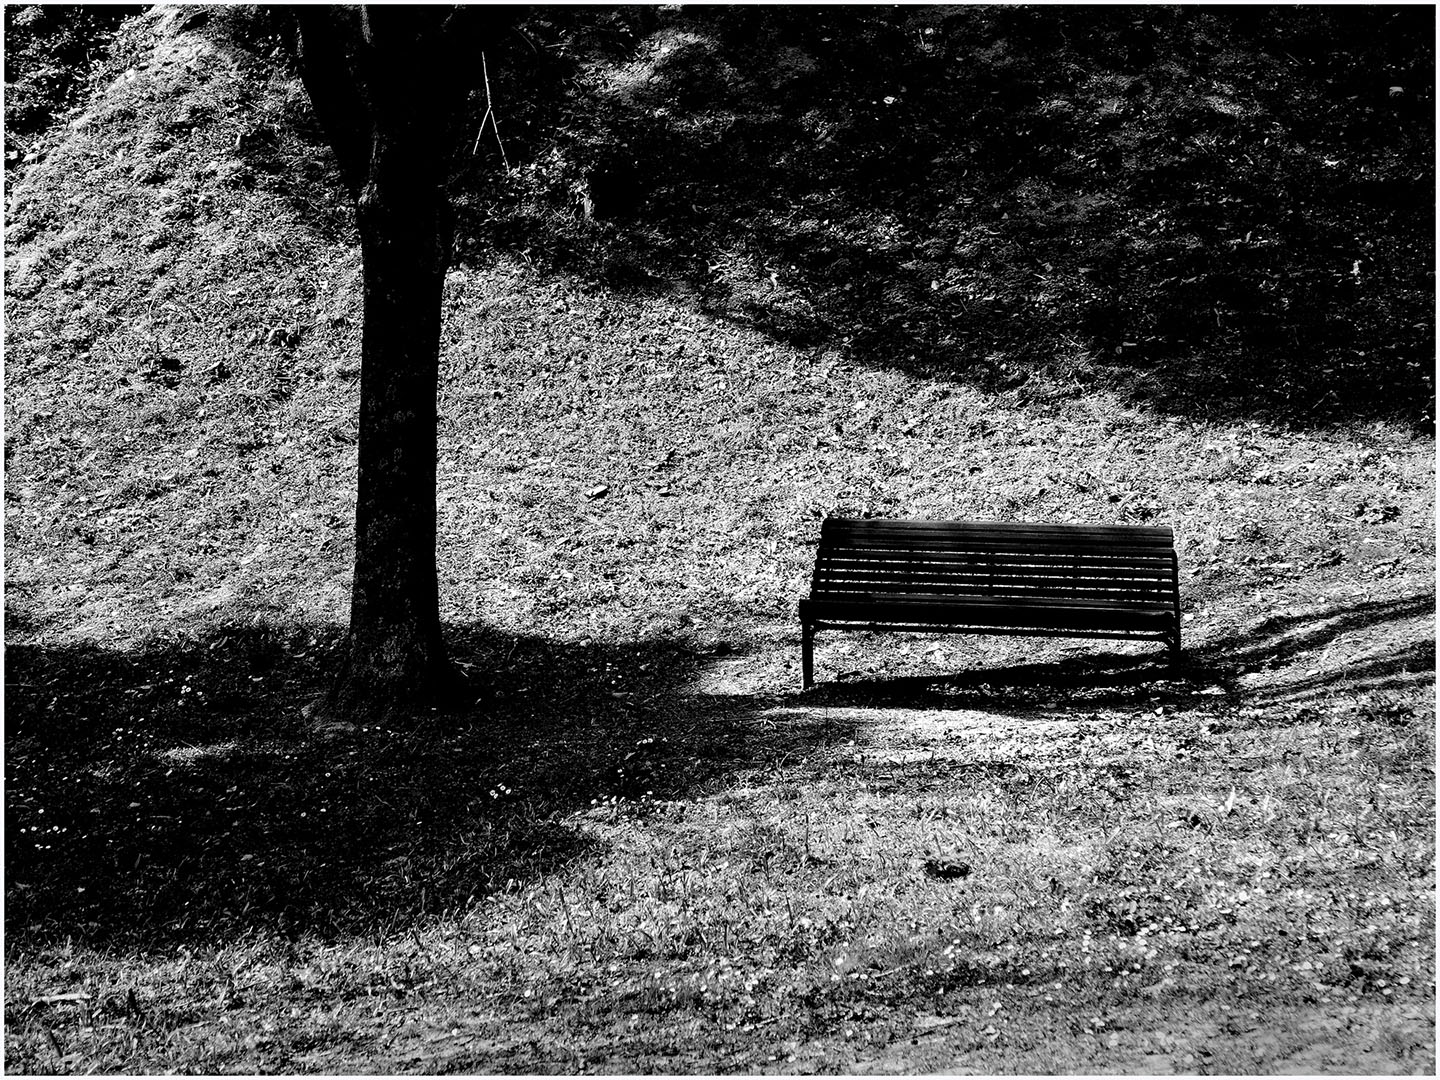 Wish_you_were_here_in_Black_and_White_041_I14.15.81